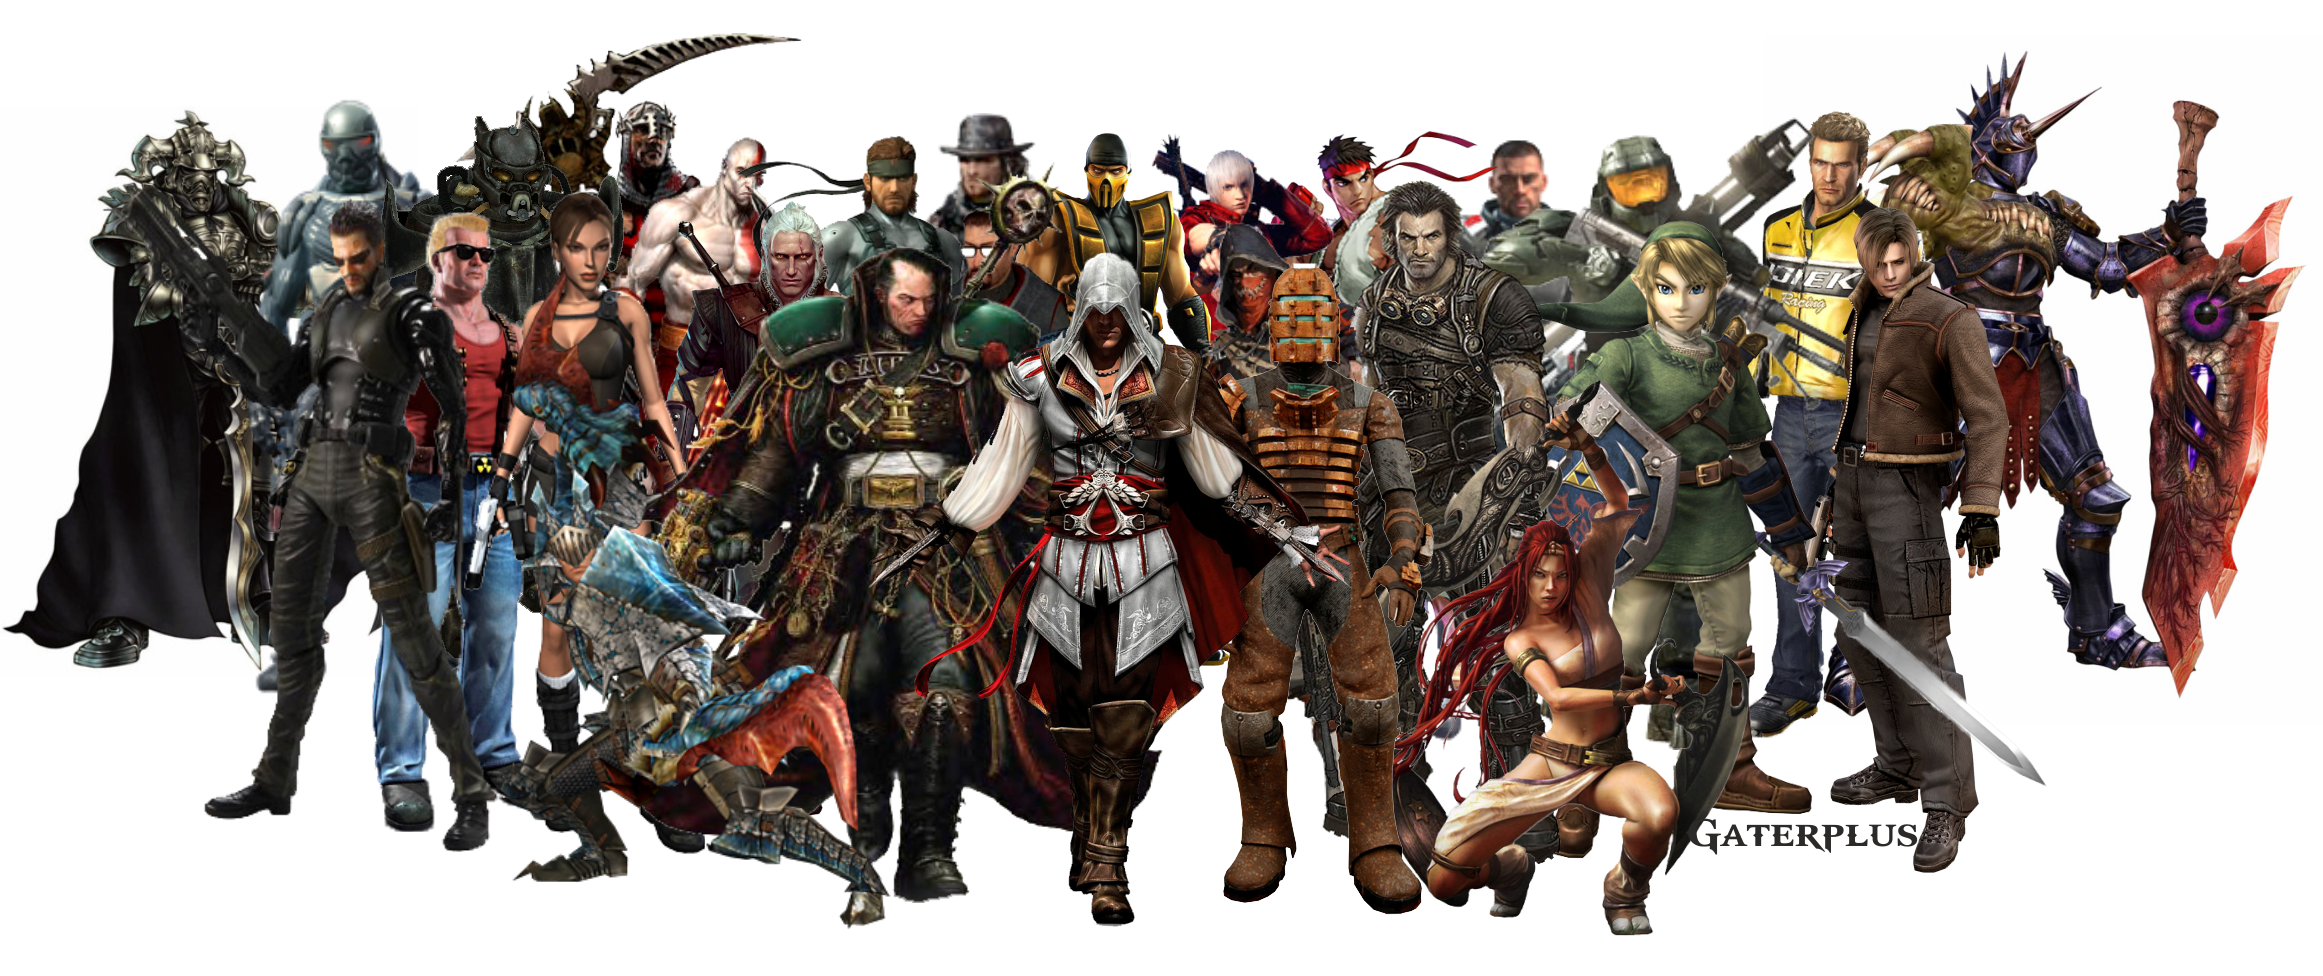 Video Game Characters Wallpaper - WallpaperSafari Video Game Characters